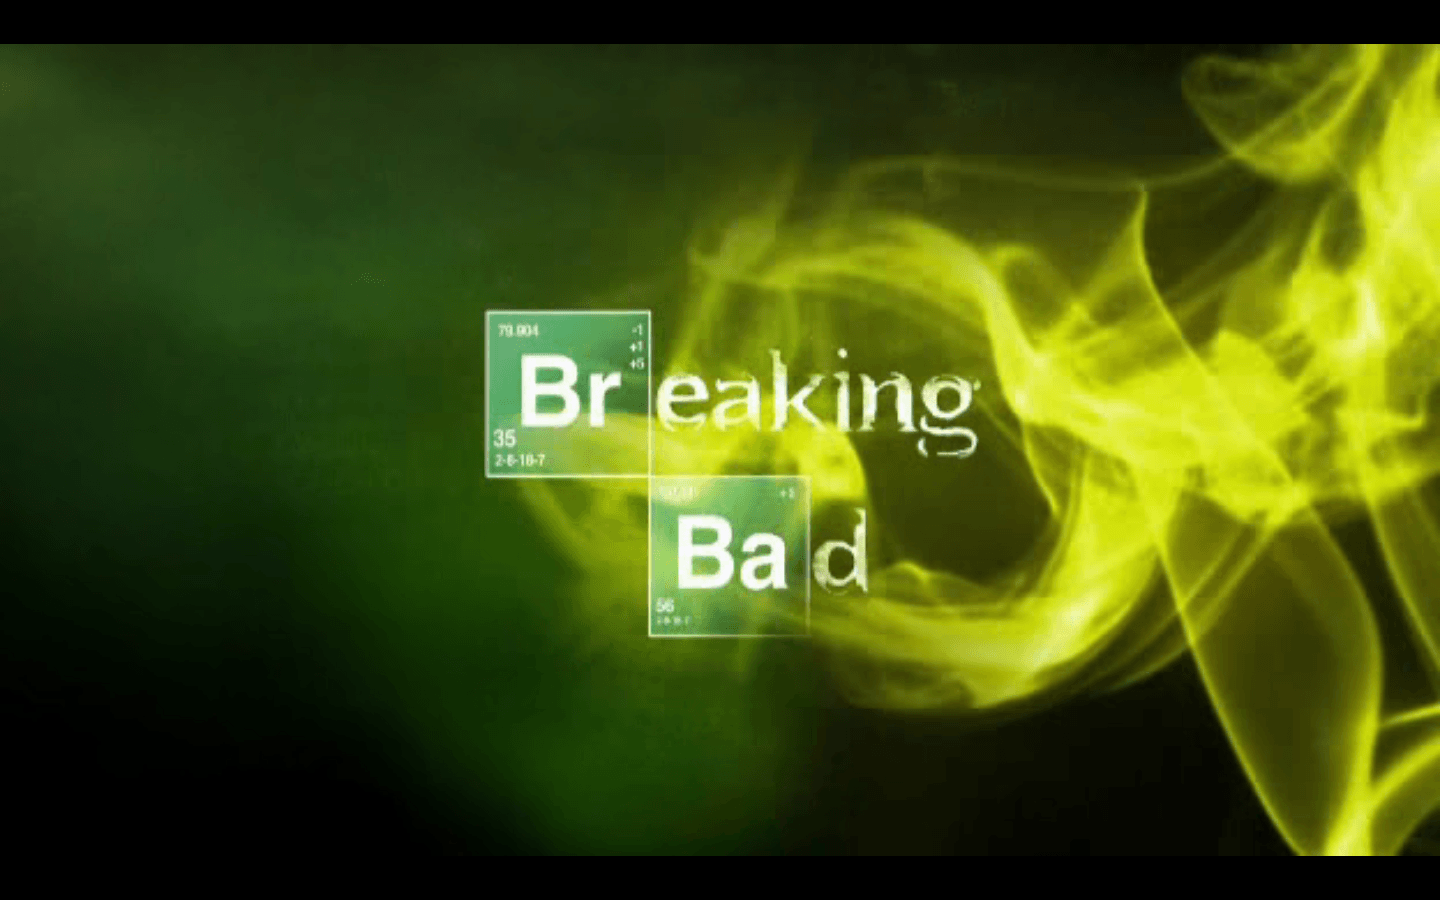 breaking bad 50 wallpapers - photo #11